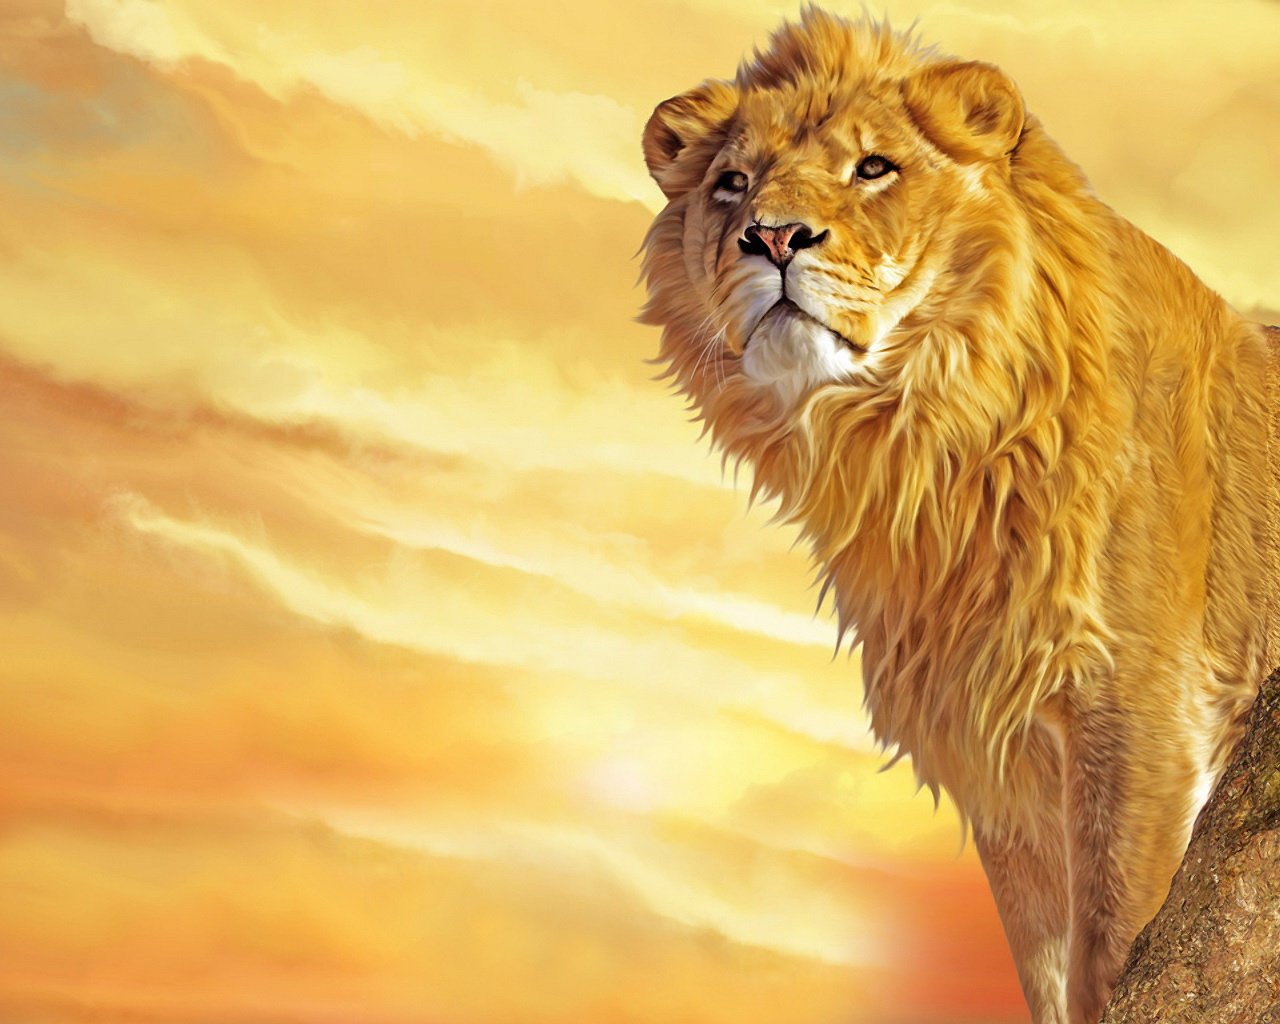 Lion King Wallpapers: Lions Wallpapers